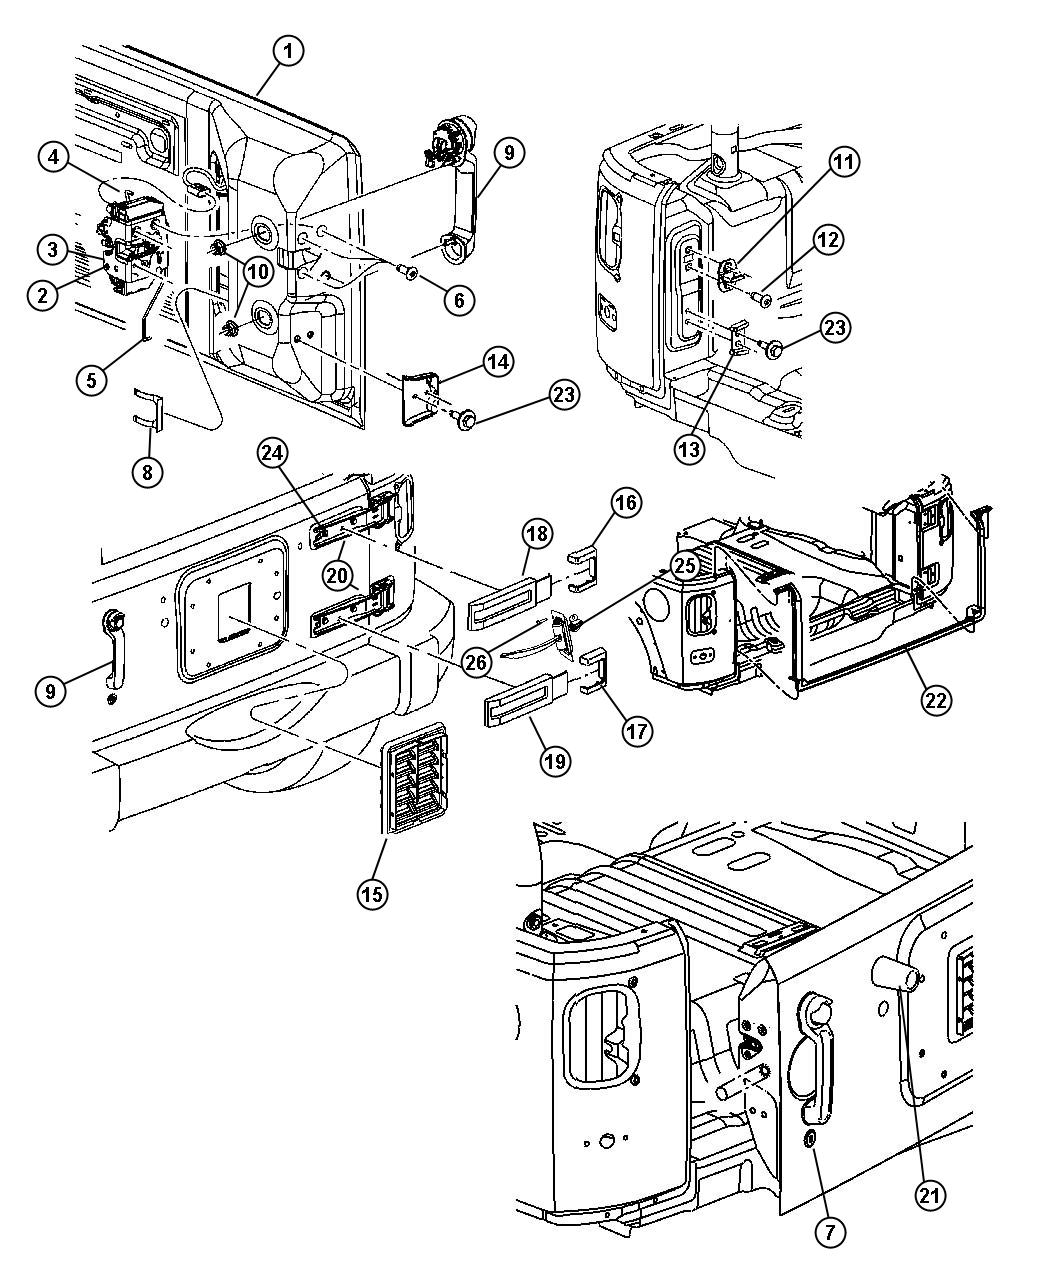 chevy avalanche bed parts diagram new era of wiring diagram Jeep Wrangler Parts Schematic 2012 dodge ram tailgate wiring diagram imageresizertool 2004 chevy avalanche parts diagram 2004 chevy avalanche